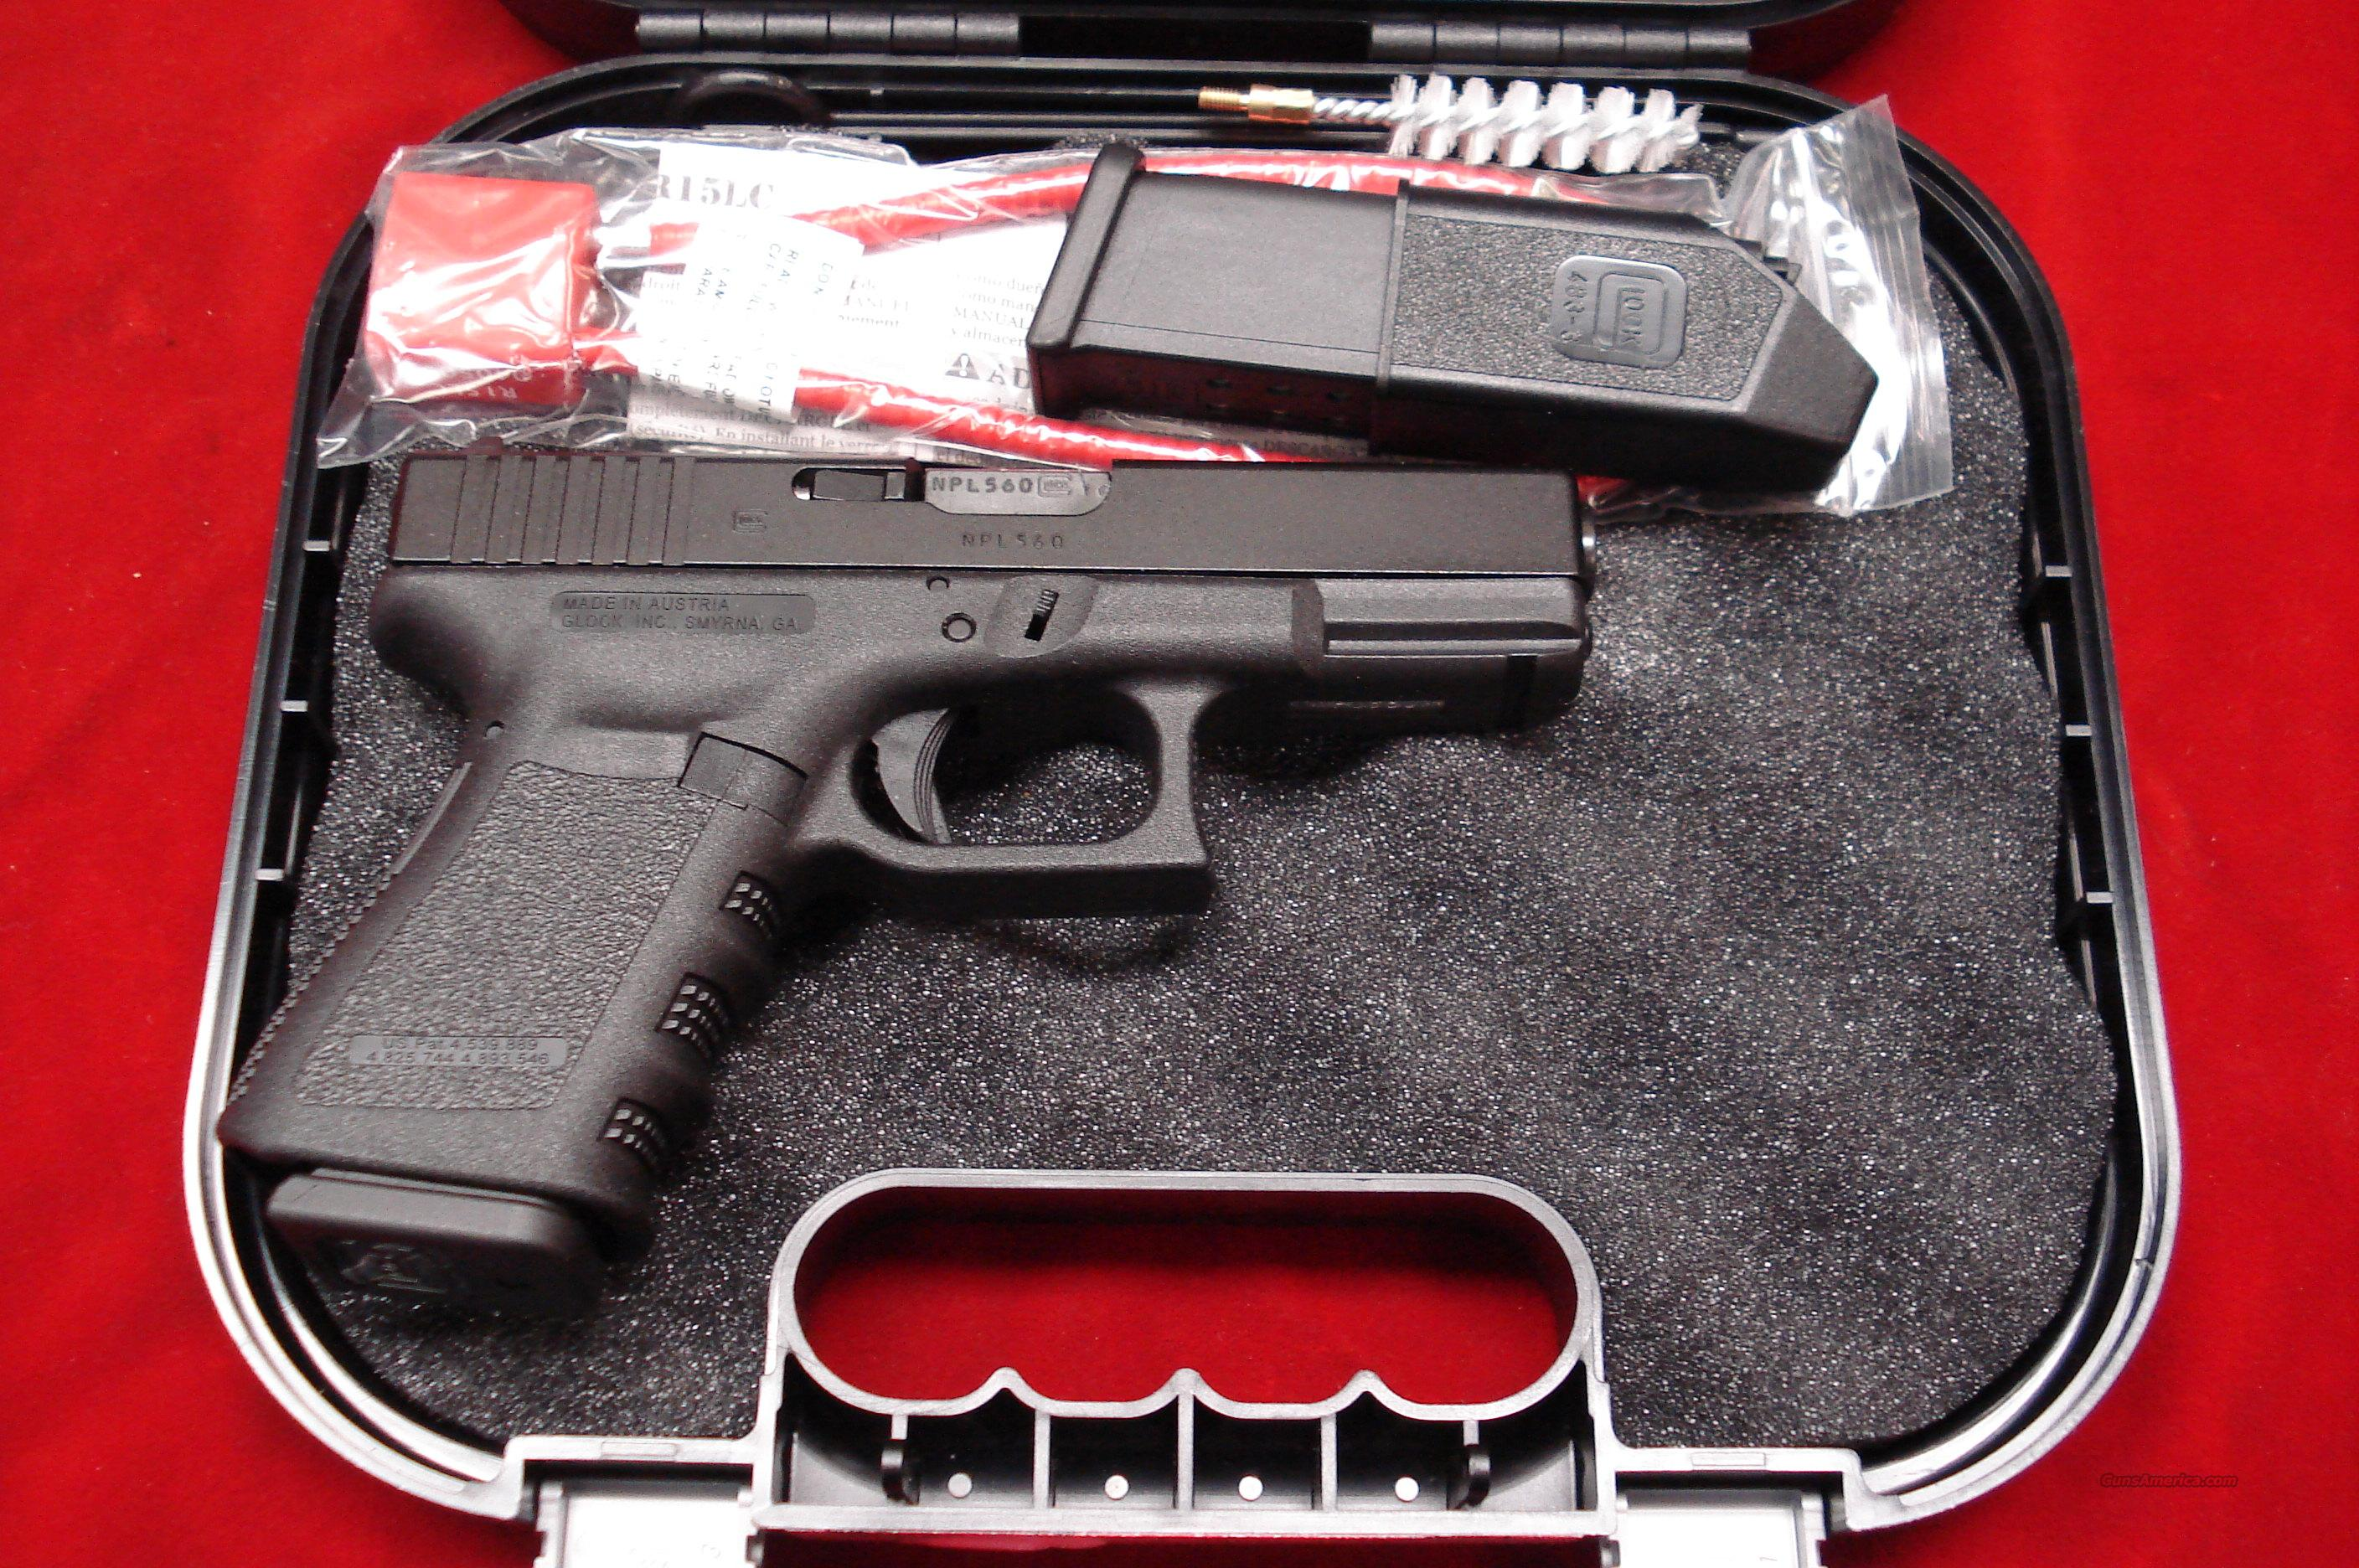 GLOCK MODEL 19C (COMPENSATED) 9MM NEW  Guns > Pistols > Glock Pistols > 19